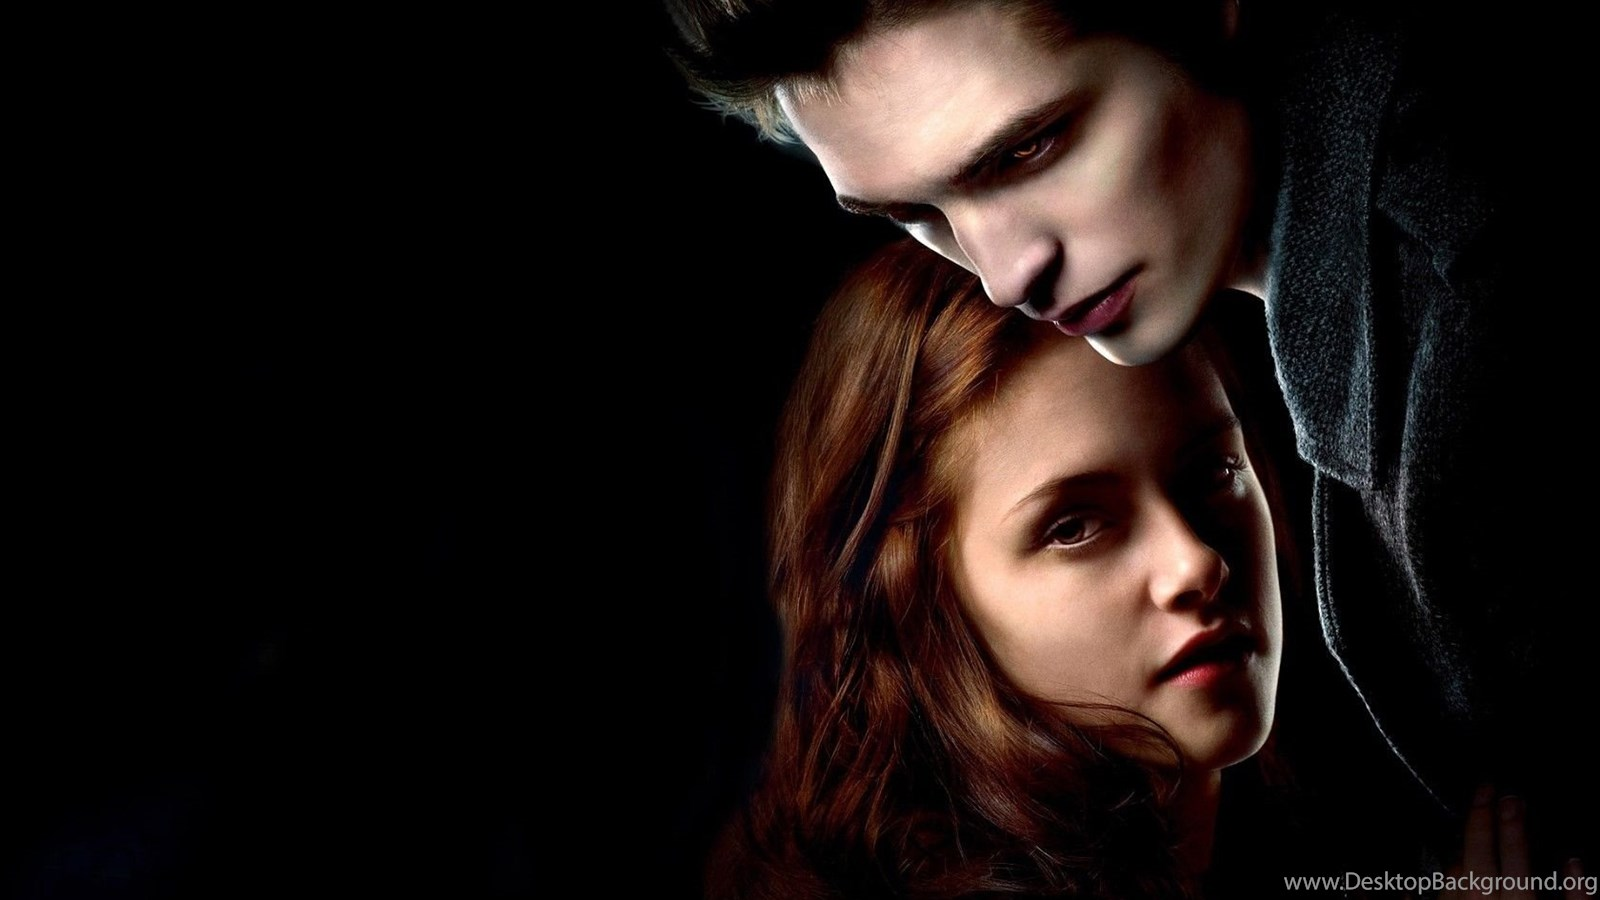 Free Wallpapers Free Movie Wallpapers The Twilight Saga New